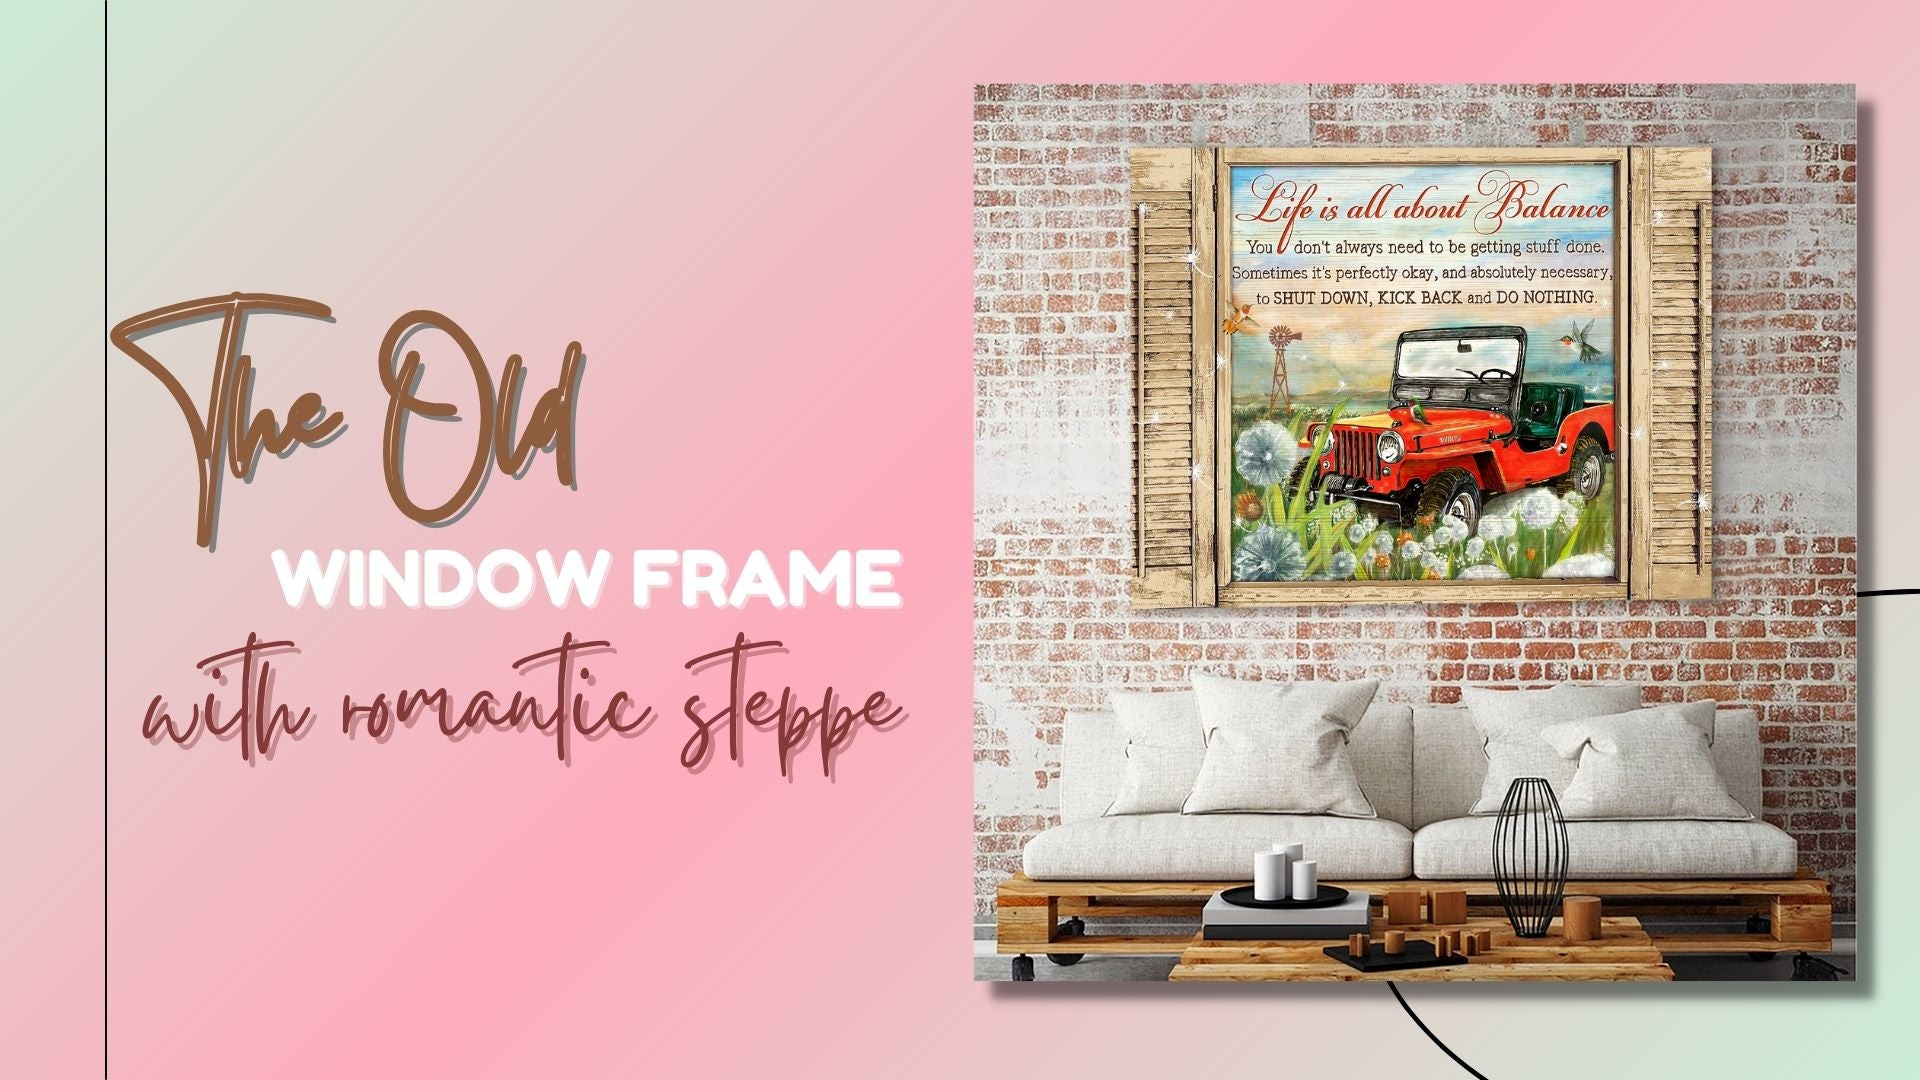 The Old window frame with romantic steppe